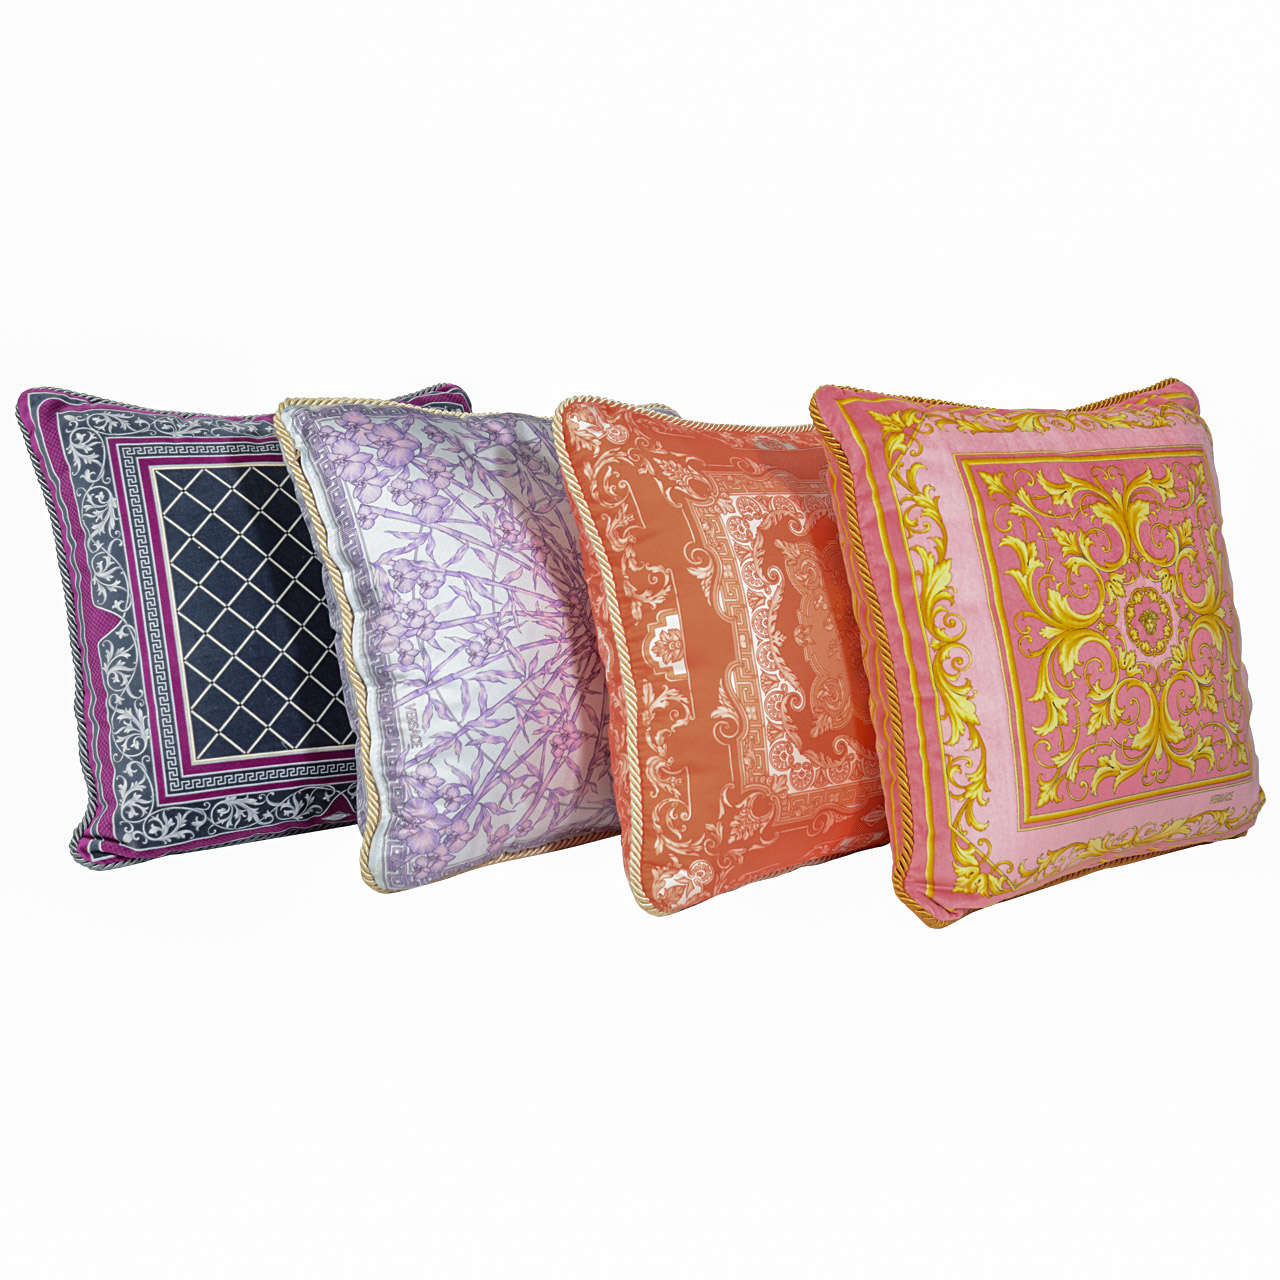 Versace pillows - Lookup BeforeBuying